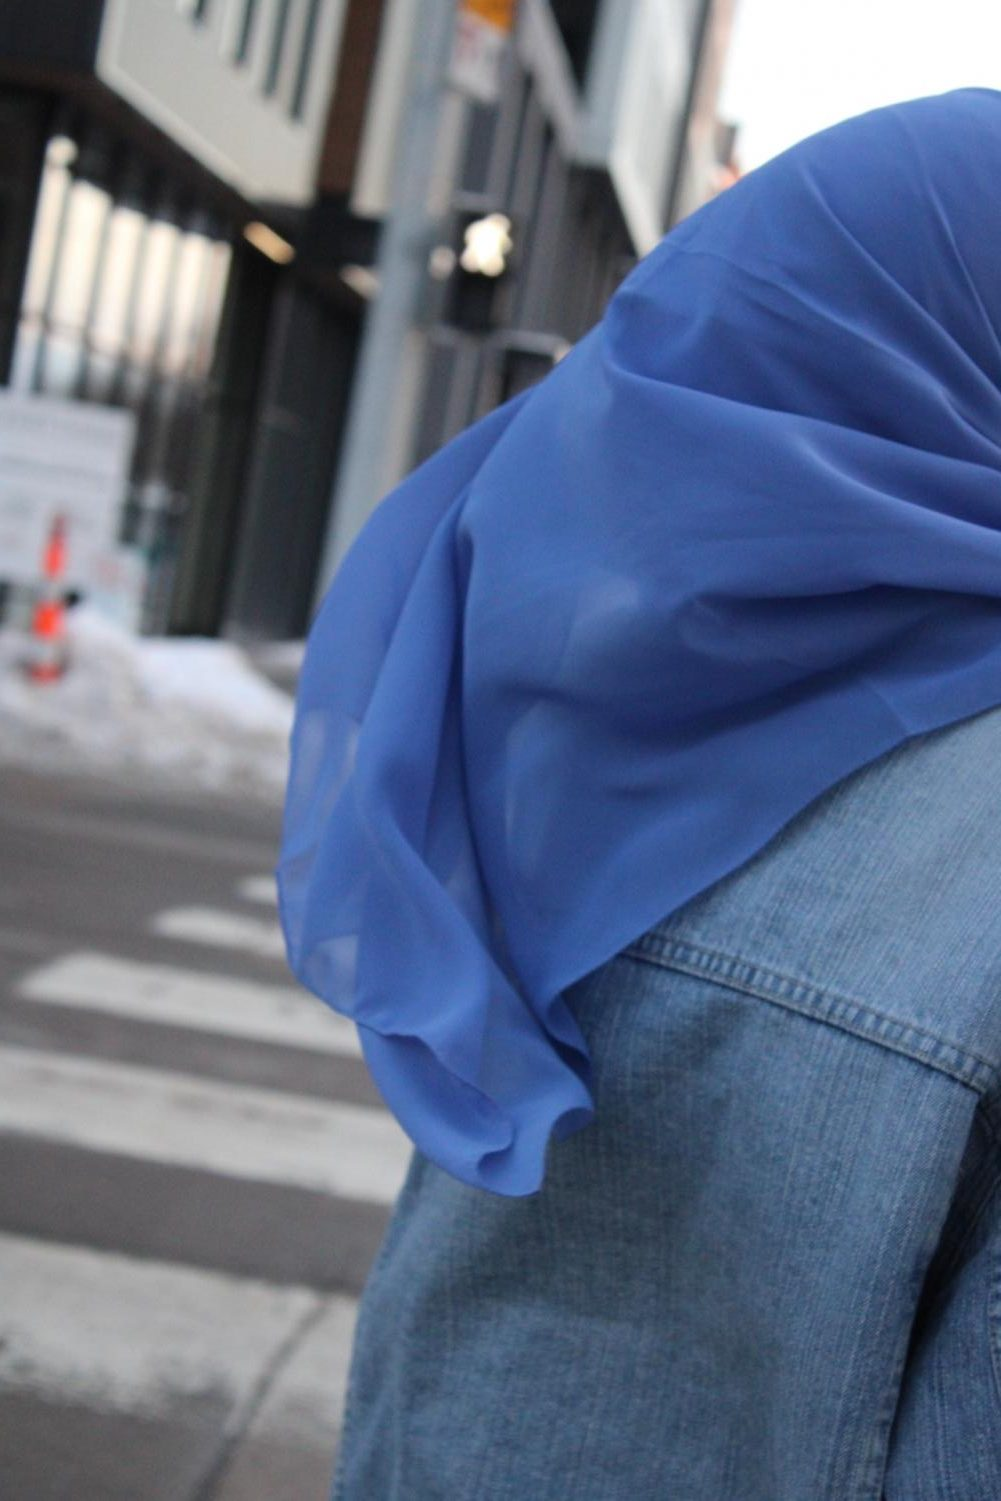 With+the+wind+blowing%2C+my+baby+blue+hijab+is+caught+in+focus.+%28shallow+depth+of+field%2Fselective+focus%29